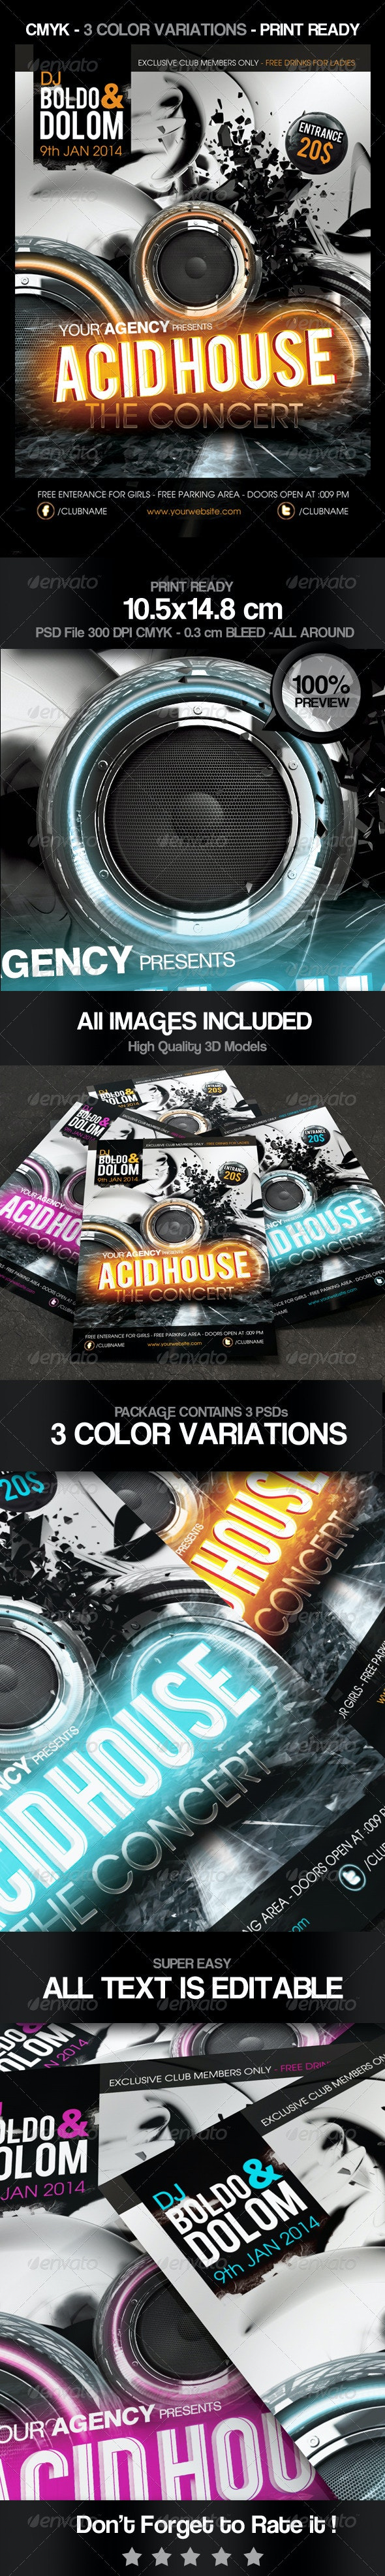 Acid House Party Flyer - Clubs & Parties Events